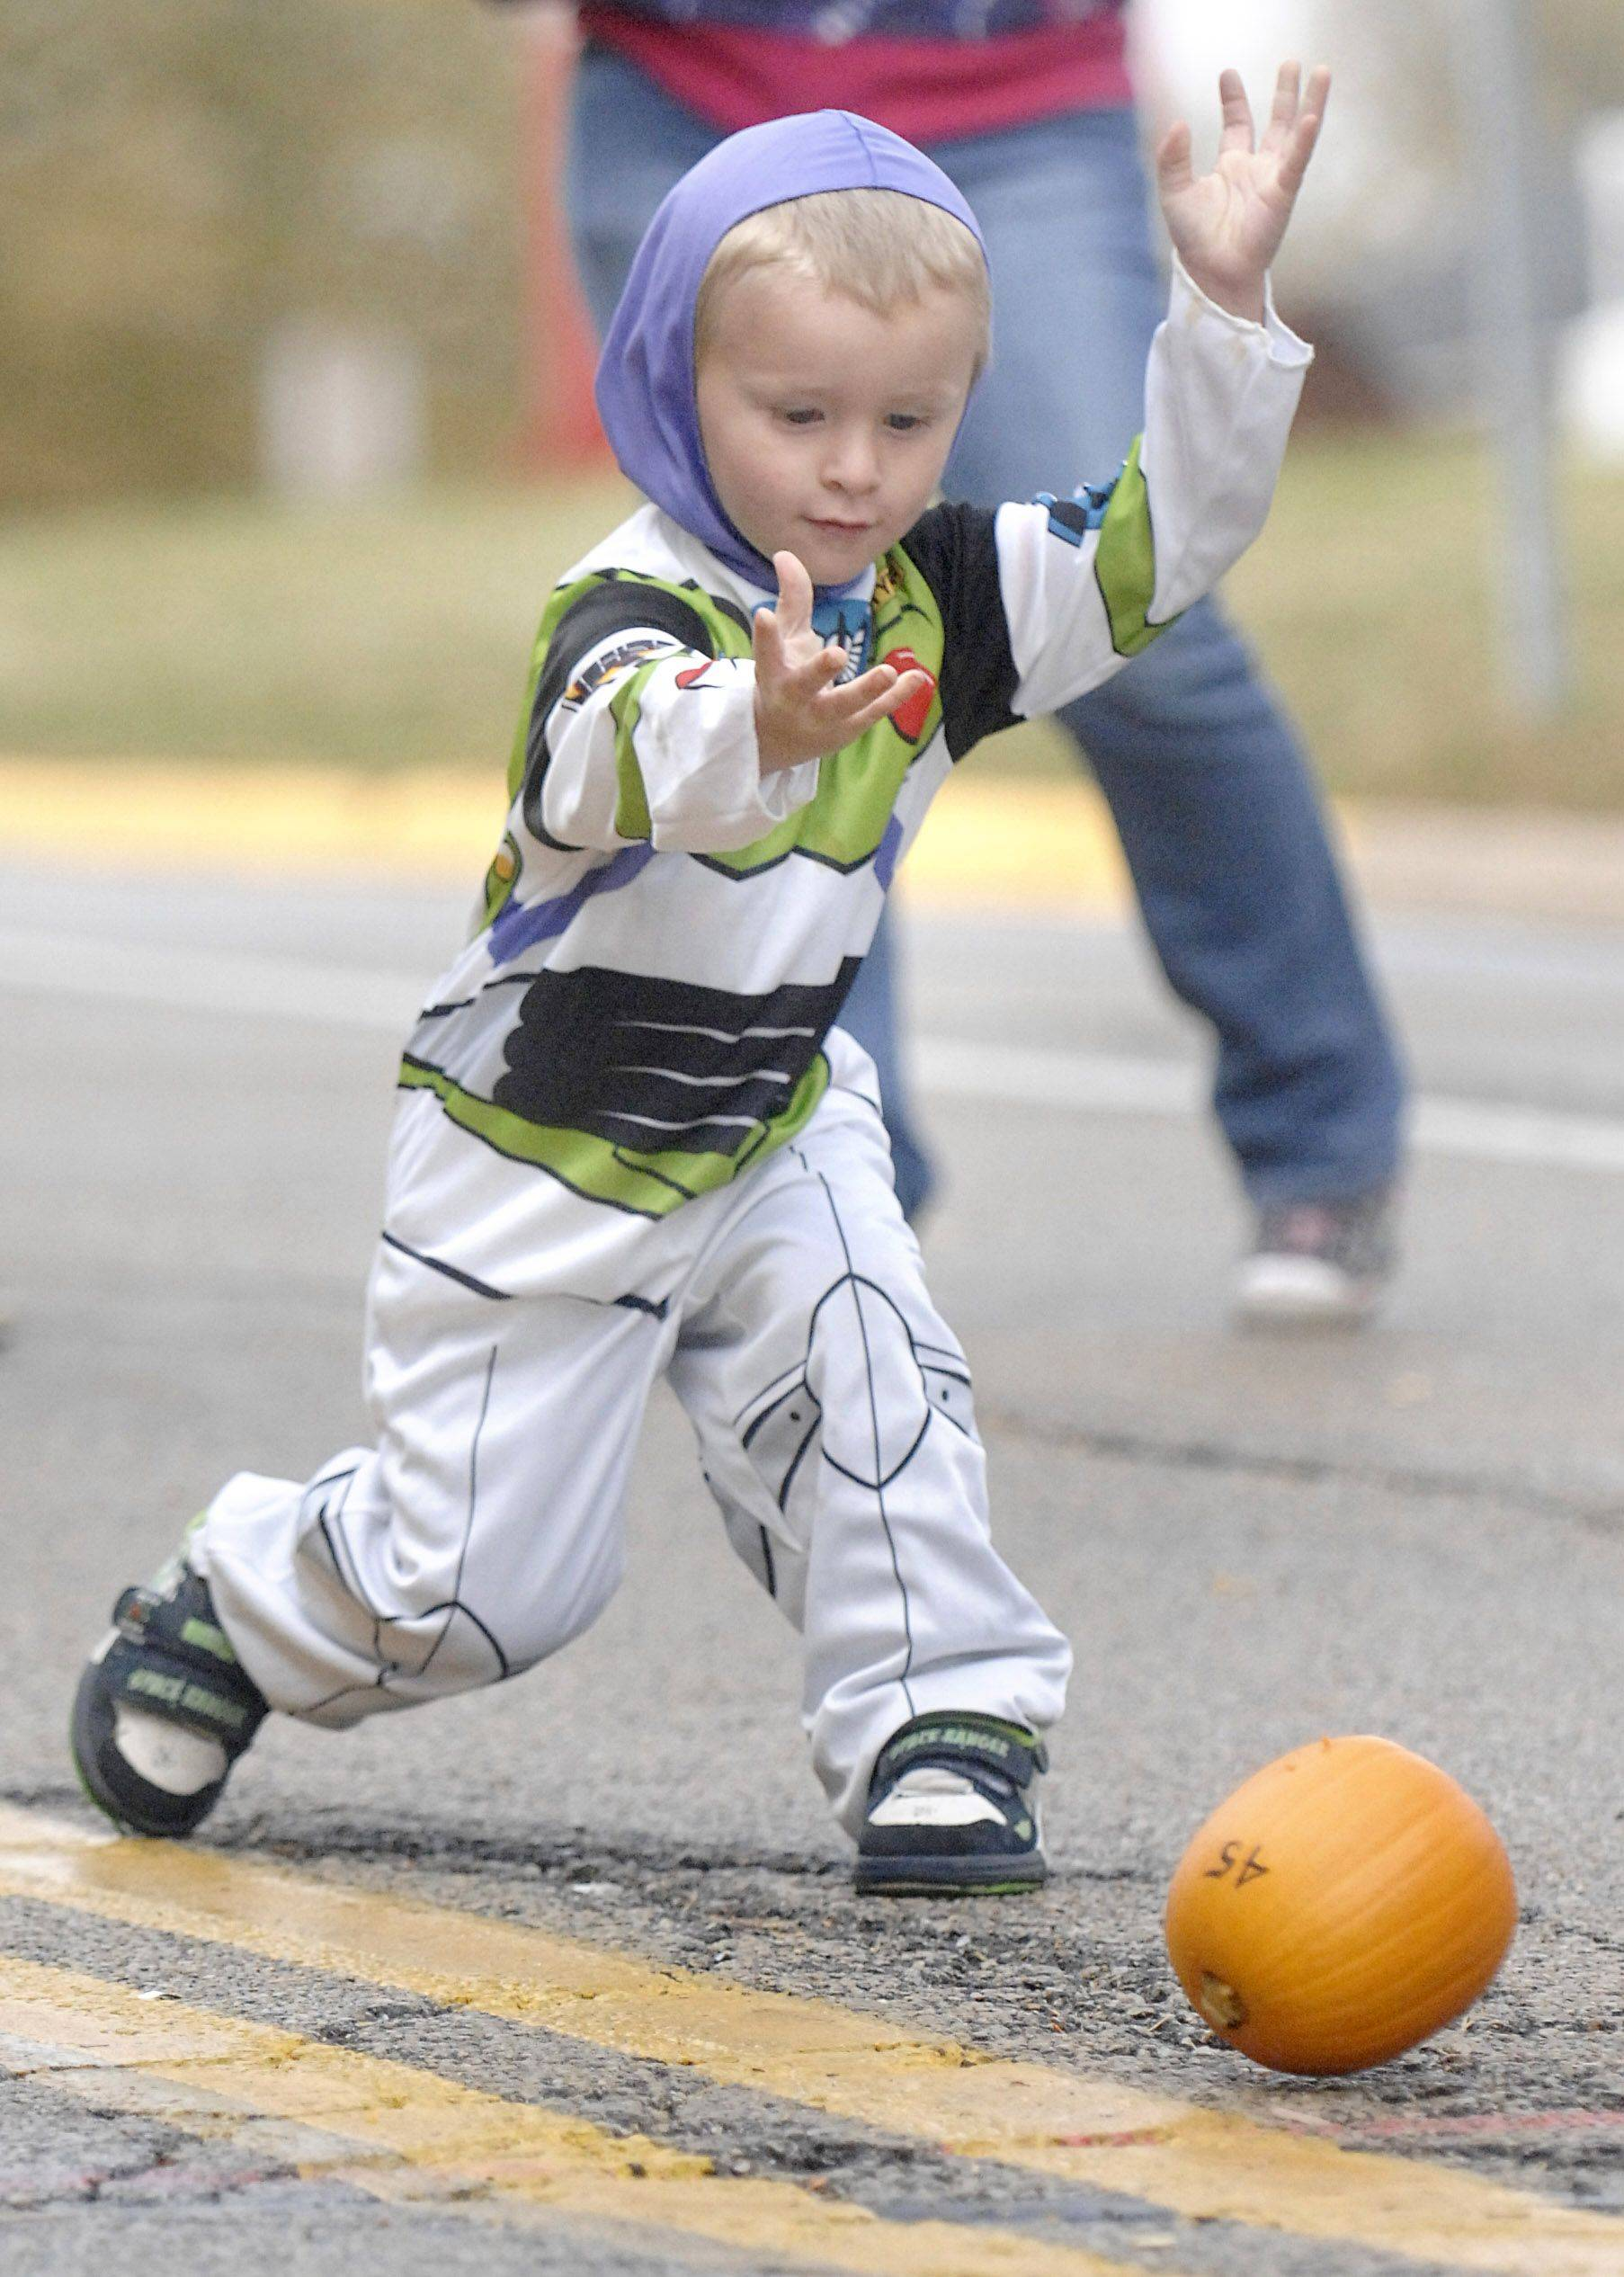 Kyle Ruhl, 3, of Batavia whips his pumpkin down Houston Street in the 10th-annual Batfest Pumpkin Roll on Saturday, October 23. People paid $1 to roll a pumpkin, and Kyle decided to do it twice. Smaller pumpkins were found to roll easier and straighter. Well, most of the time.